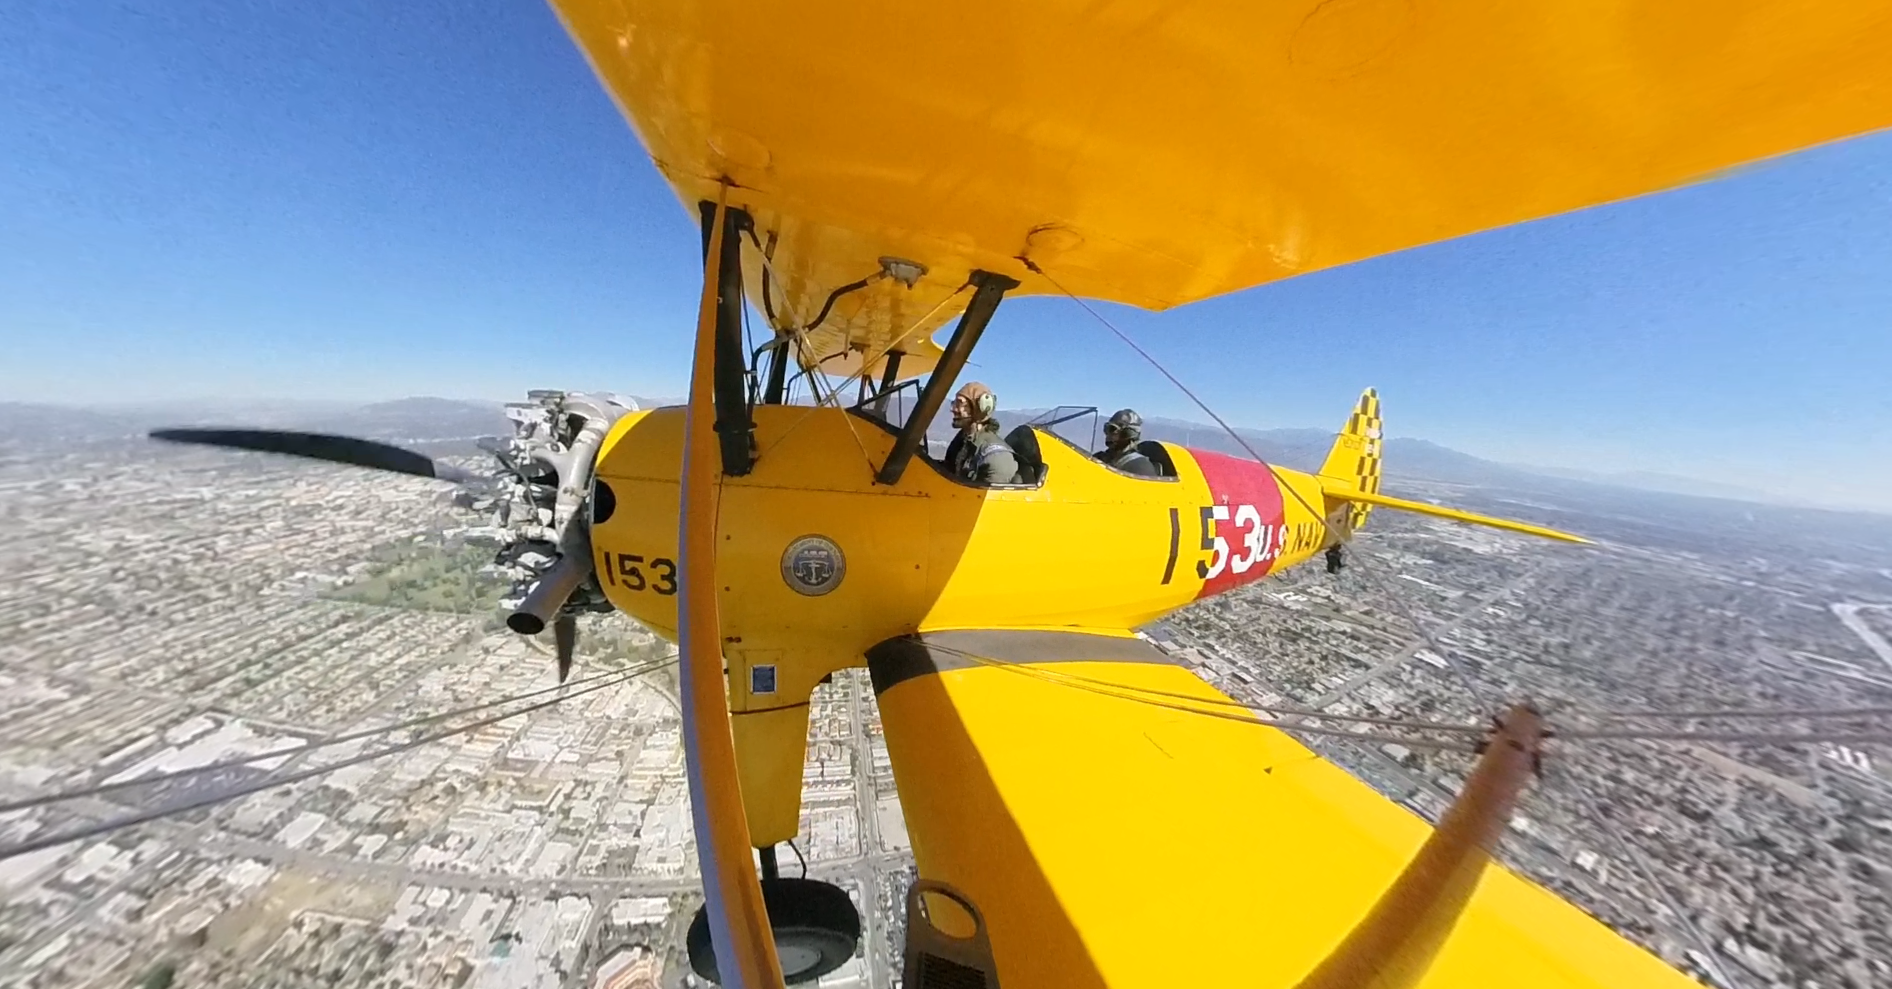 San Gabriel Valley Airport Association President Gabe Lopez pilots his 1939 Stearman biplane over the San Gabriel Valley, with KTLA Digital Producer Giovanni Moujaes riding along, on Oct. 16, 2018.